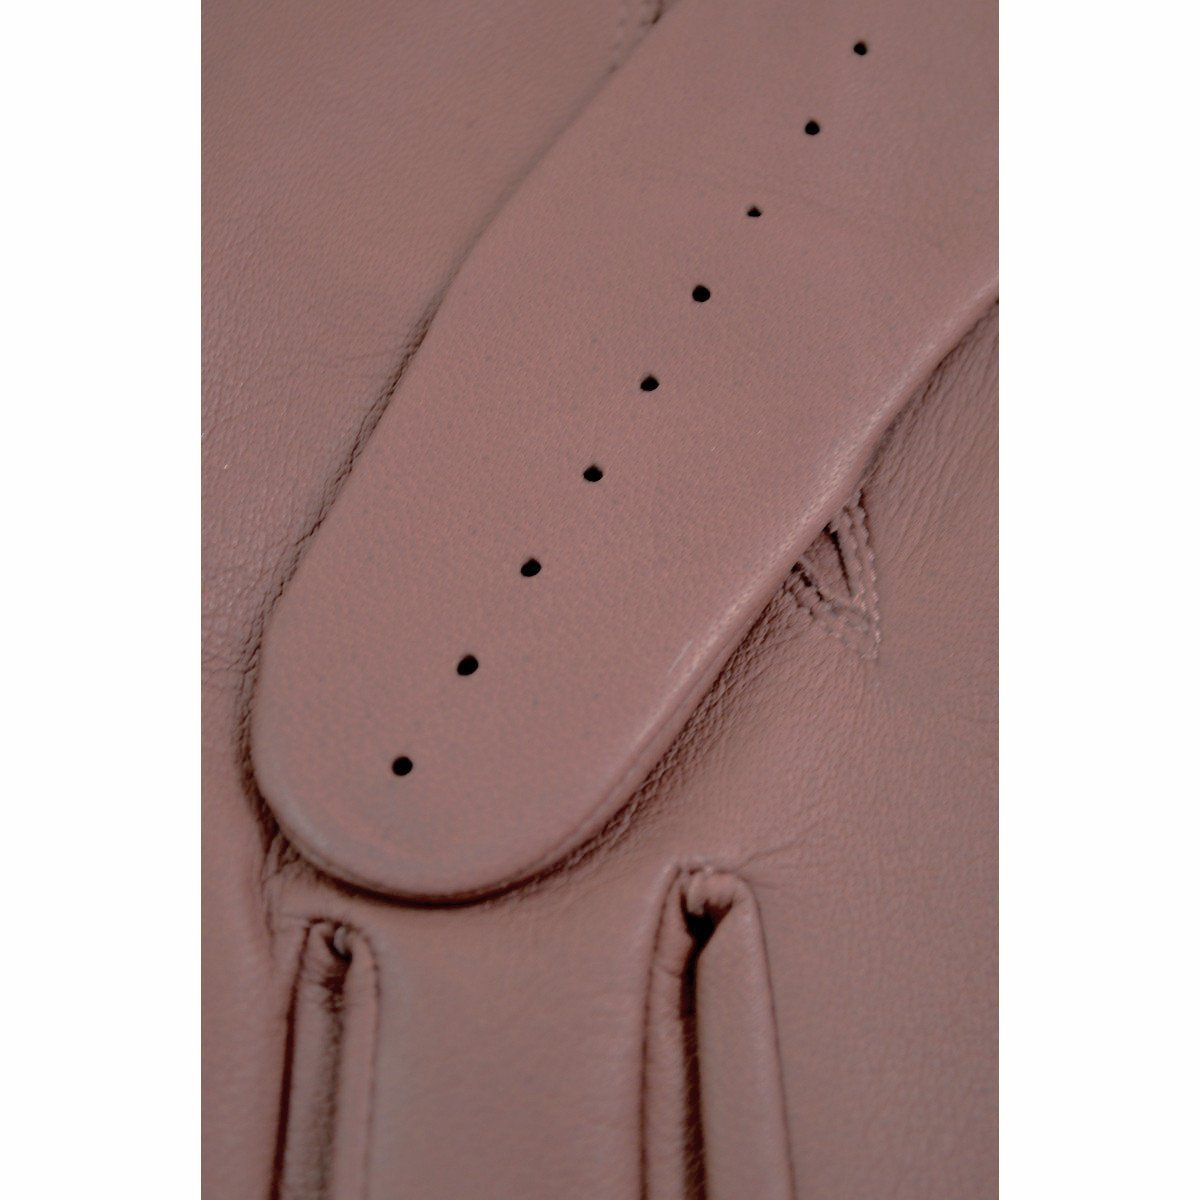 English leather driving gloves - Dents Cliveden Perforated Leather Driving Gloves English Tan